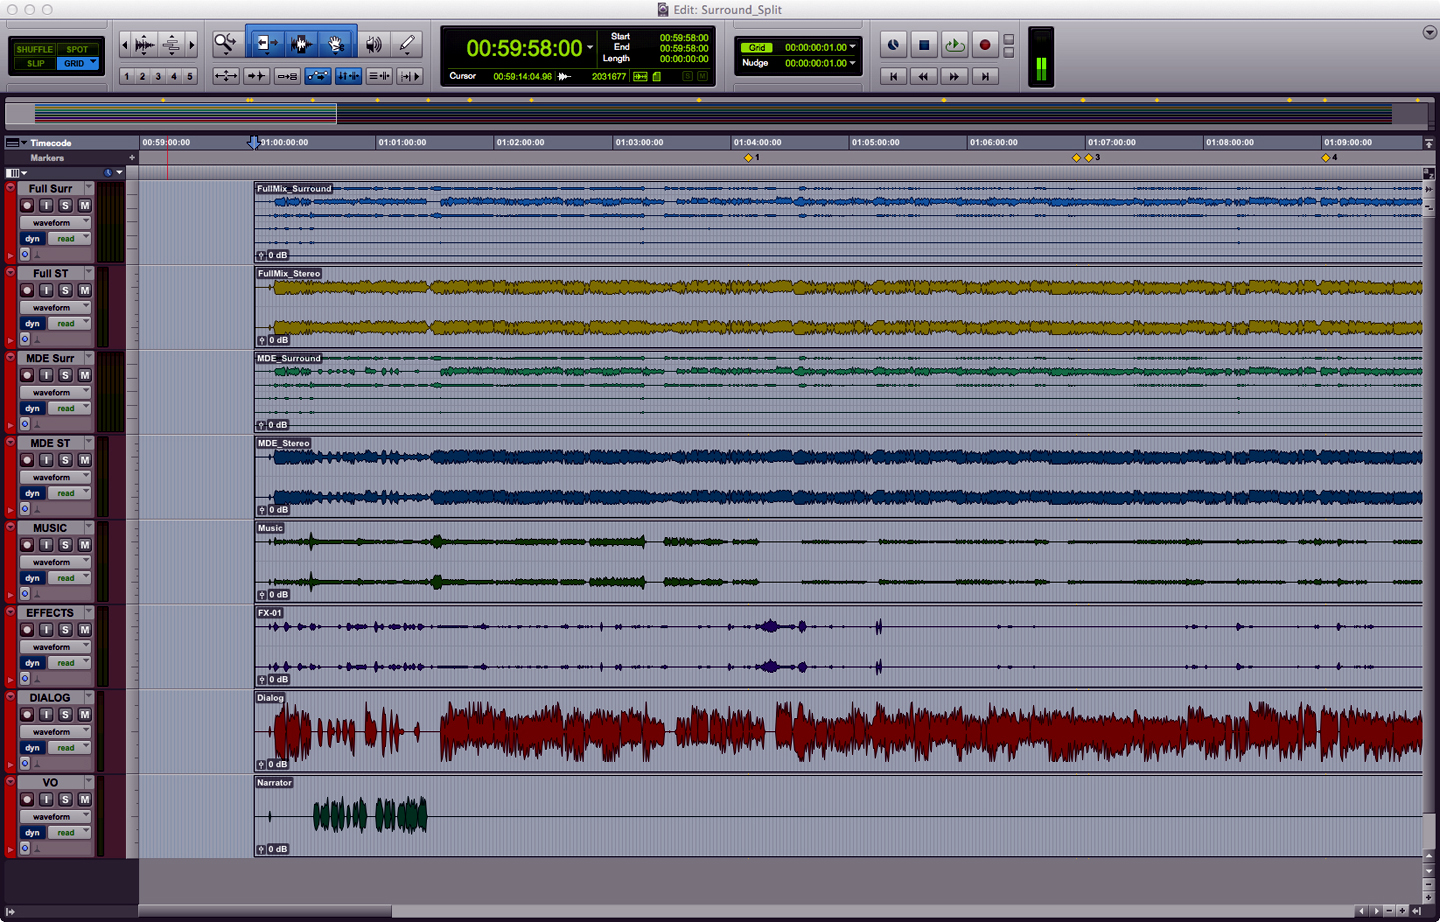 Audio Splits, Stems & Elemental Tracks 9